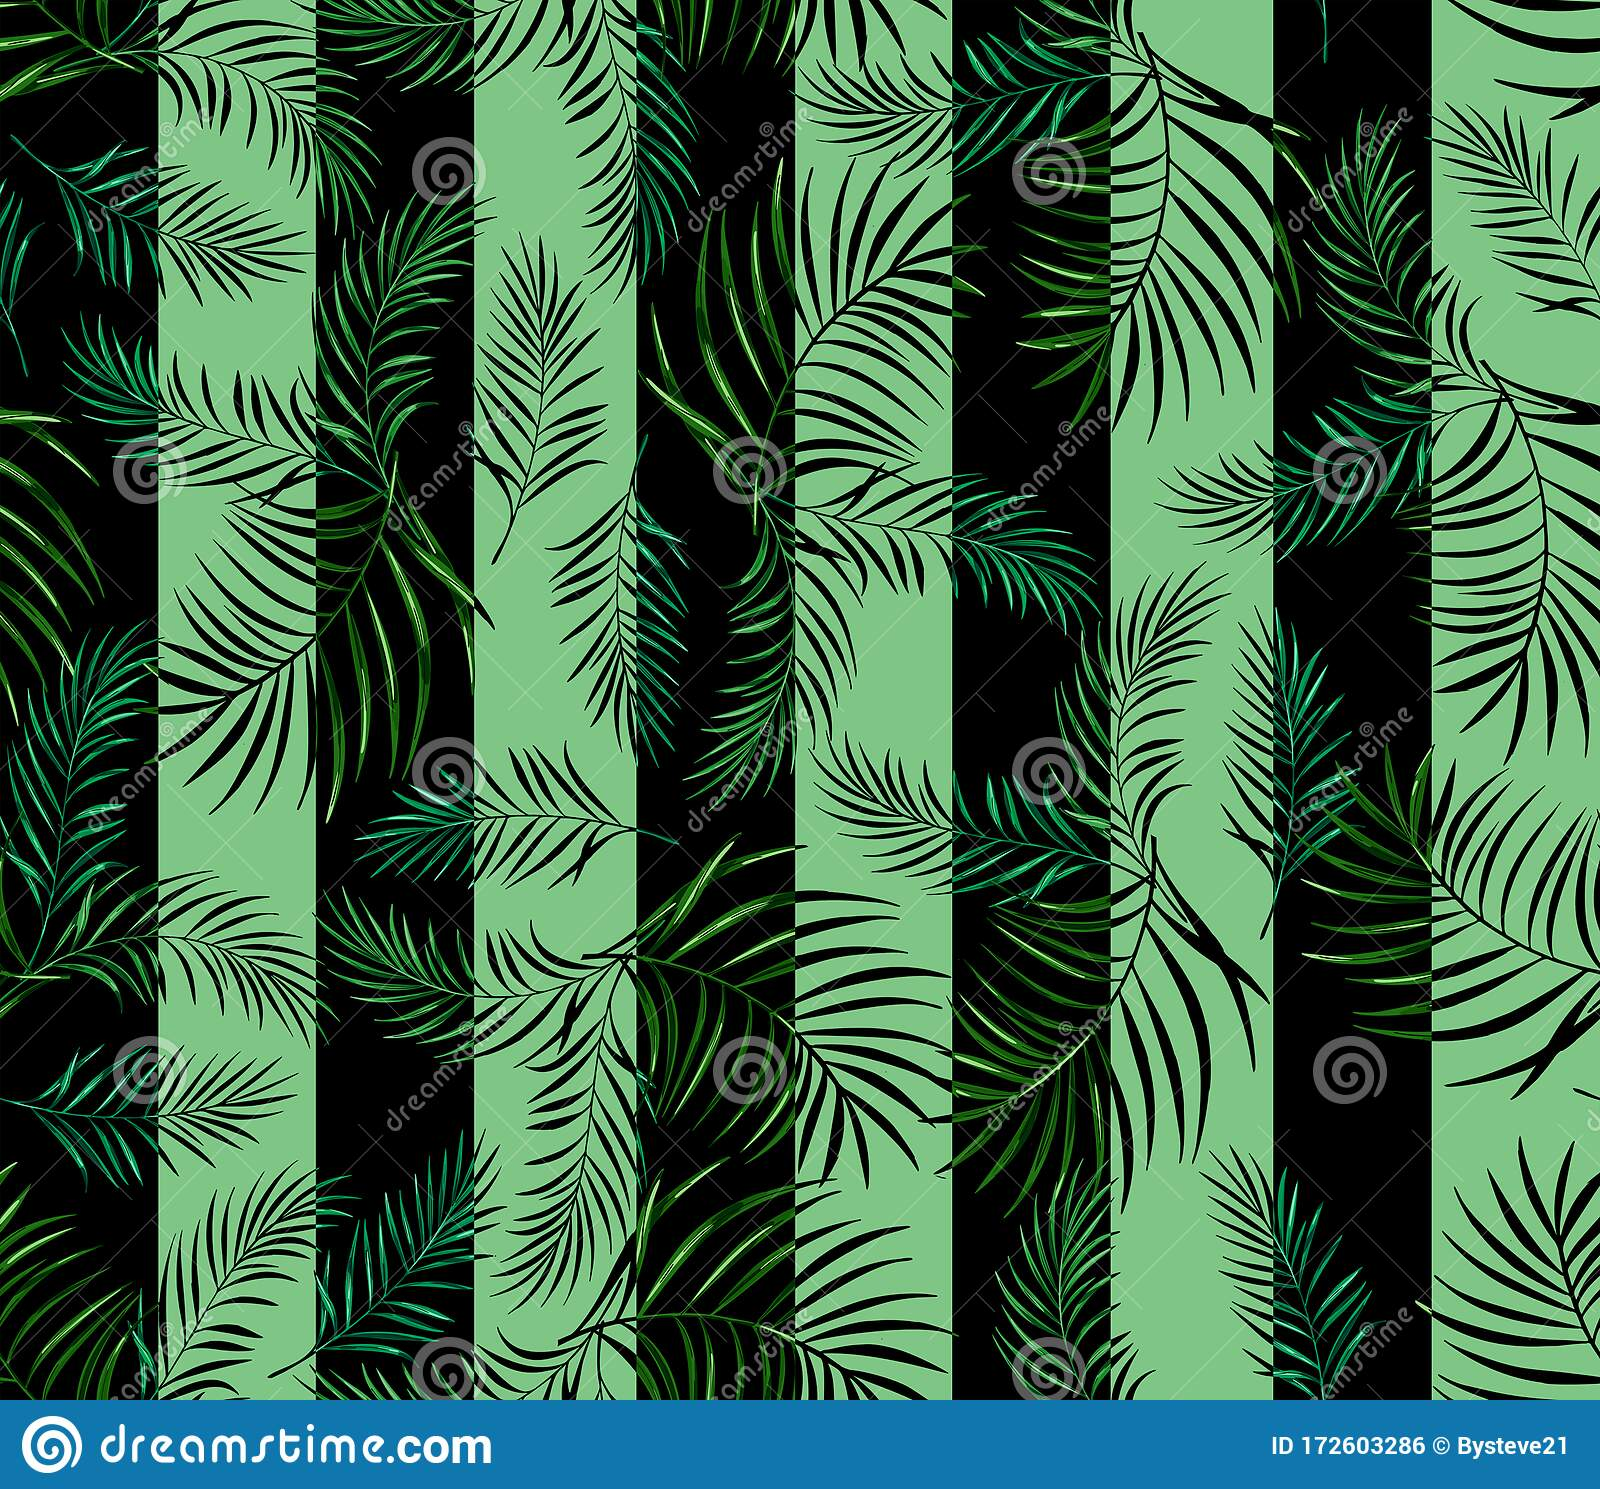 Tropical Leaves With Lines Background Seamless Pattern Stock Illustration Illustration Of Abstract Birds 172603286 Nature and flora vector footage of palm tree leaves. dreamstime com